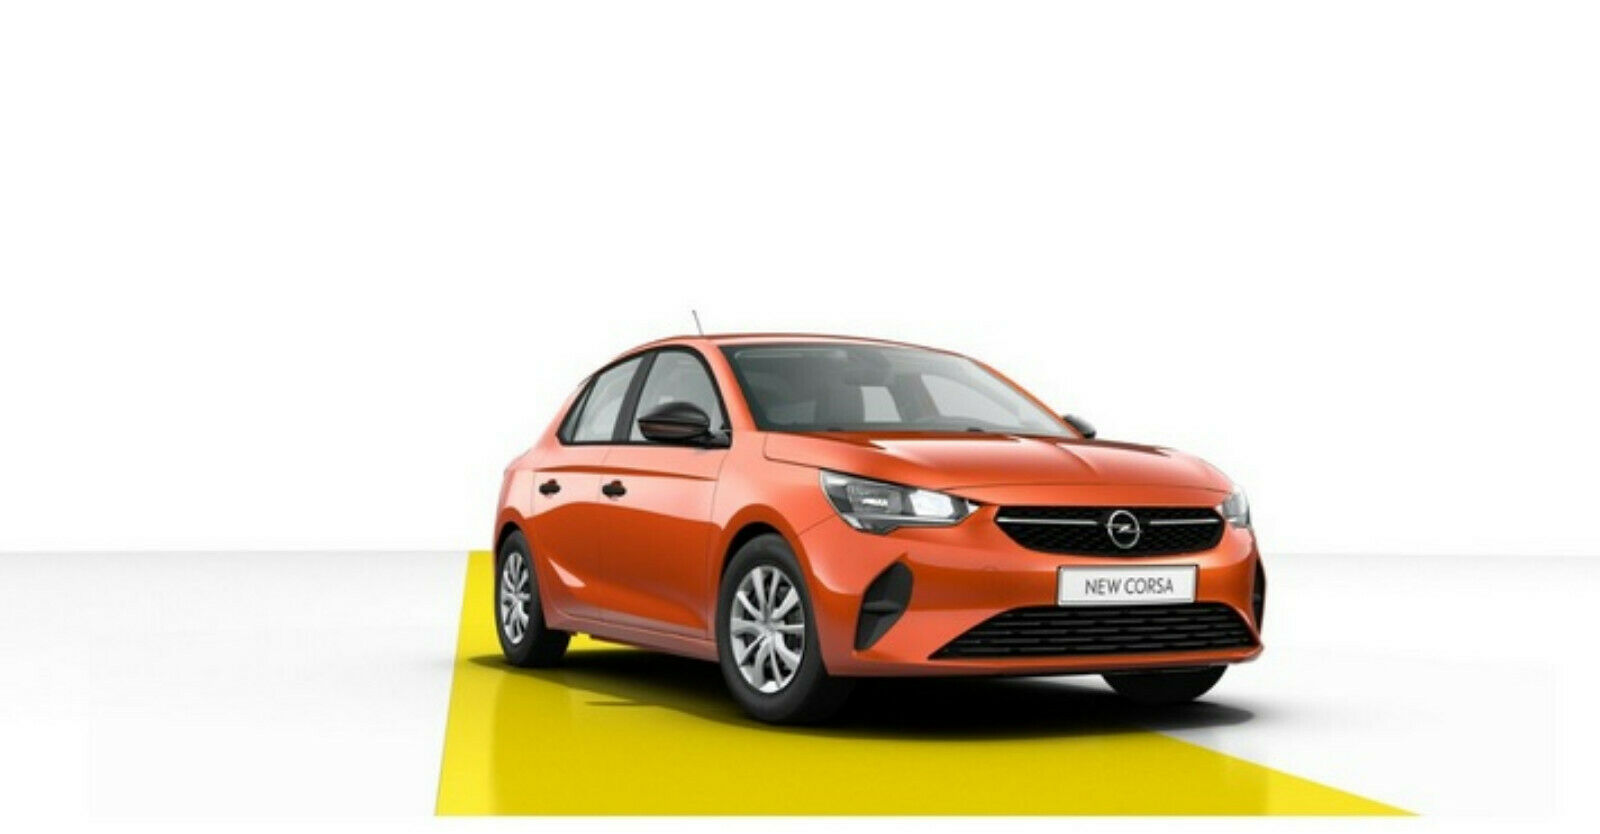 OPEL Corsa F 1.2 S&S 75PS Neues Modell 2020!